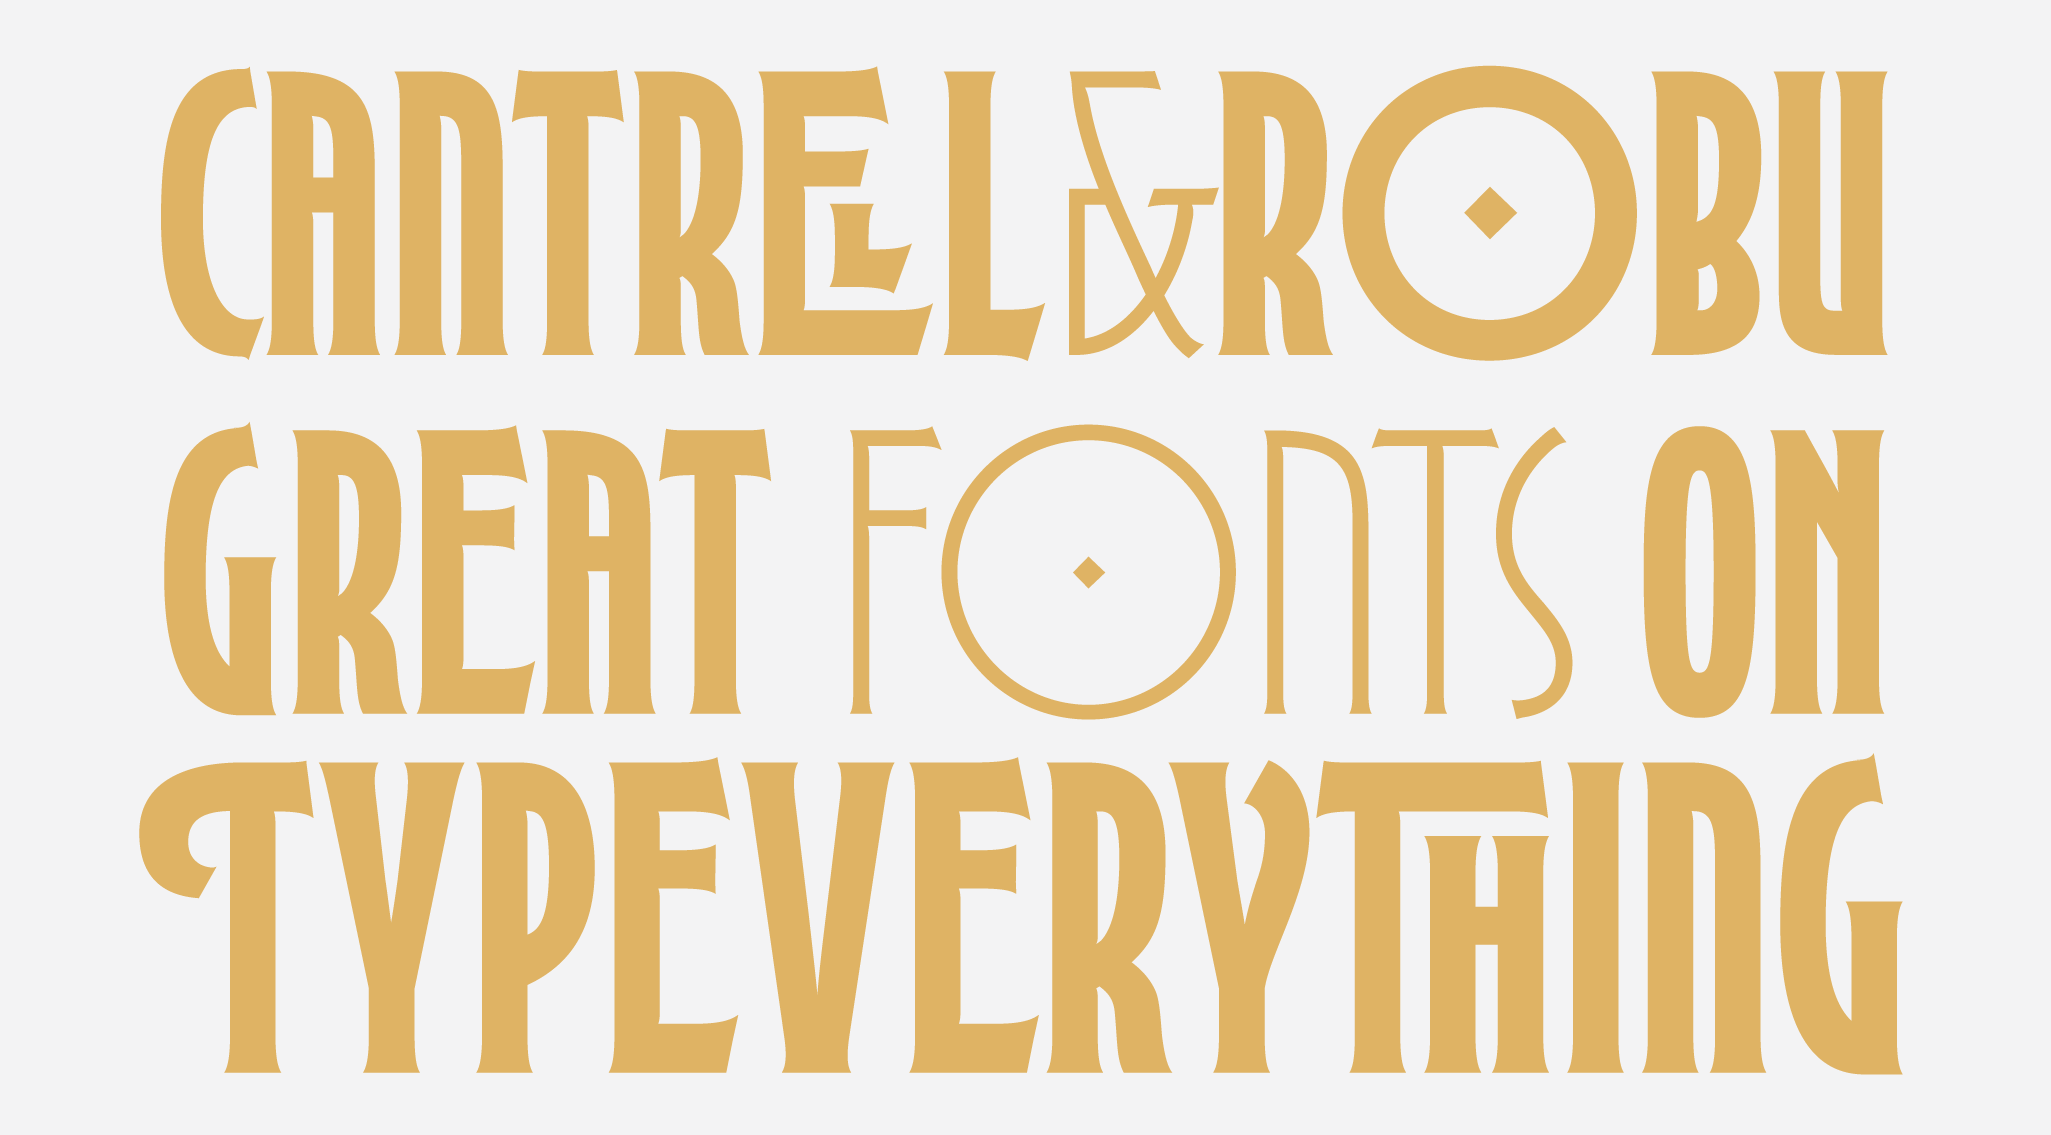 Fitzroy Display, a new typeface designed by Kevin Cantrell. Available on www.typeverything.com